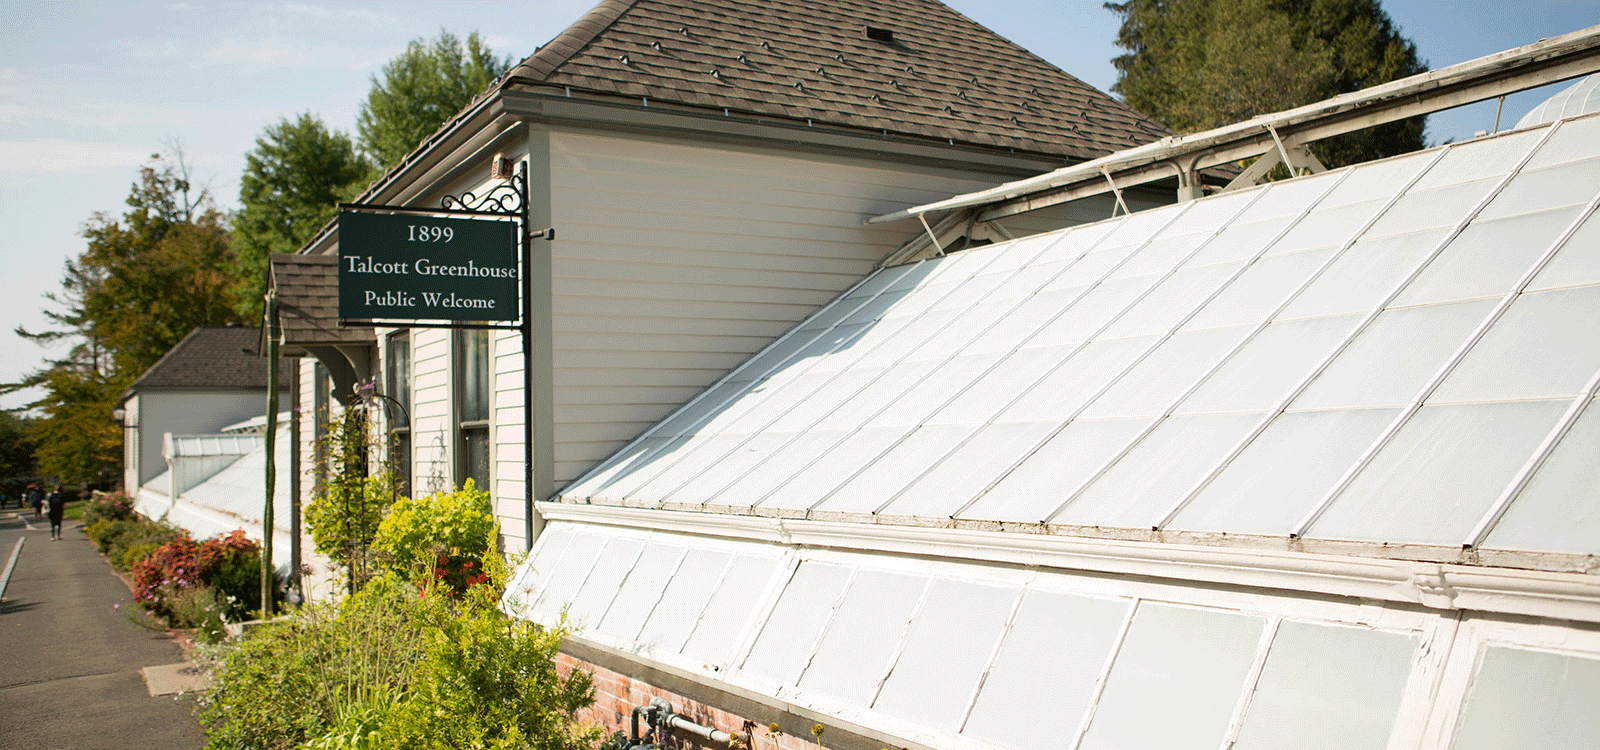 Photo of the exterior of Talcot Greenhouse